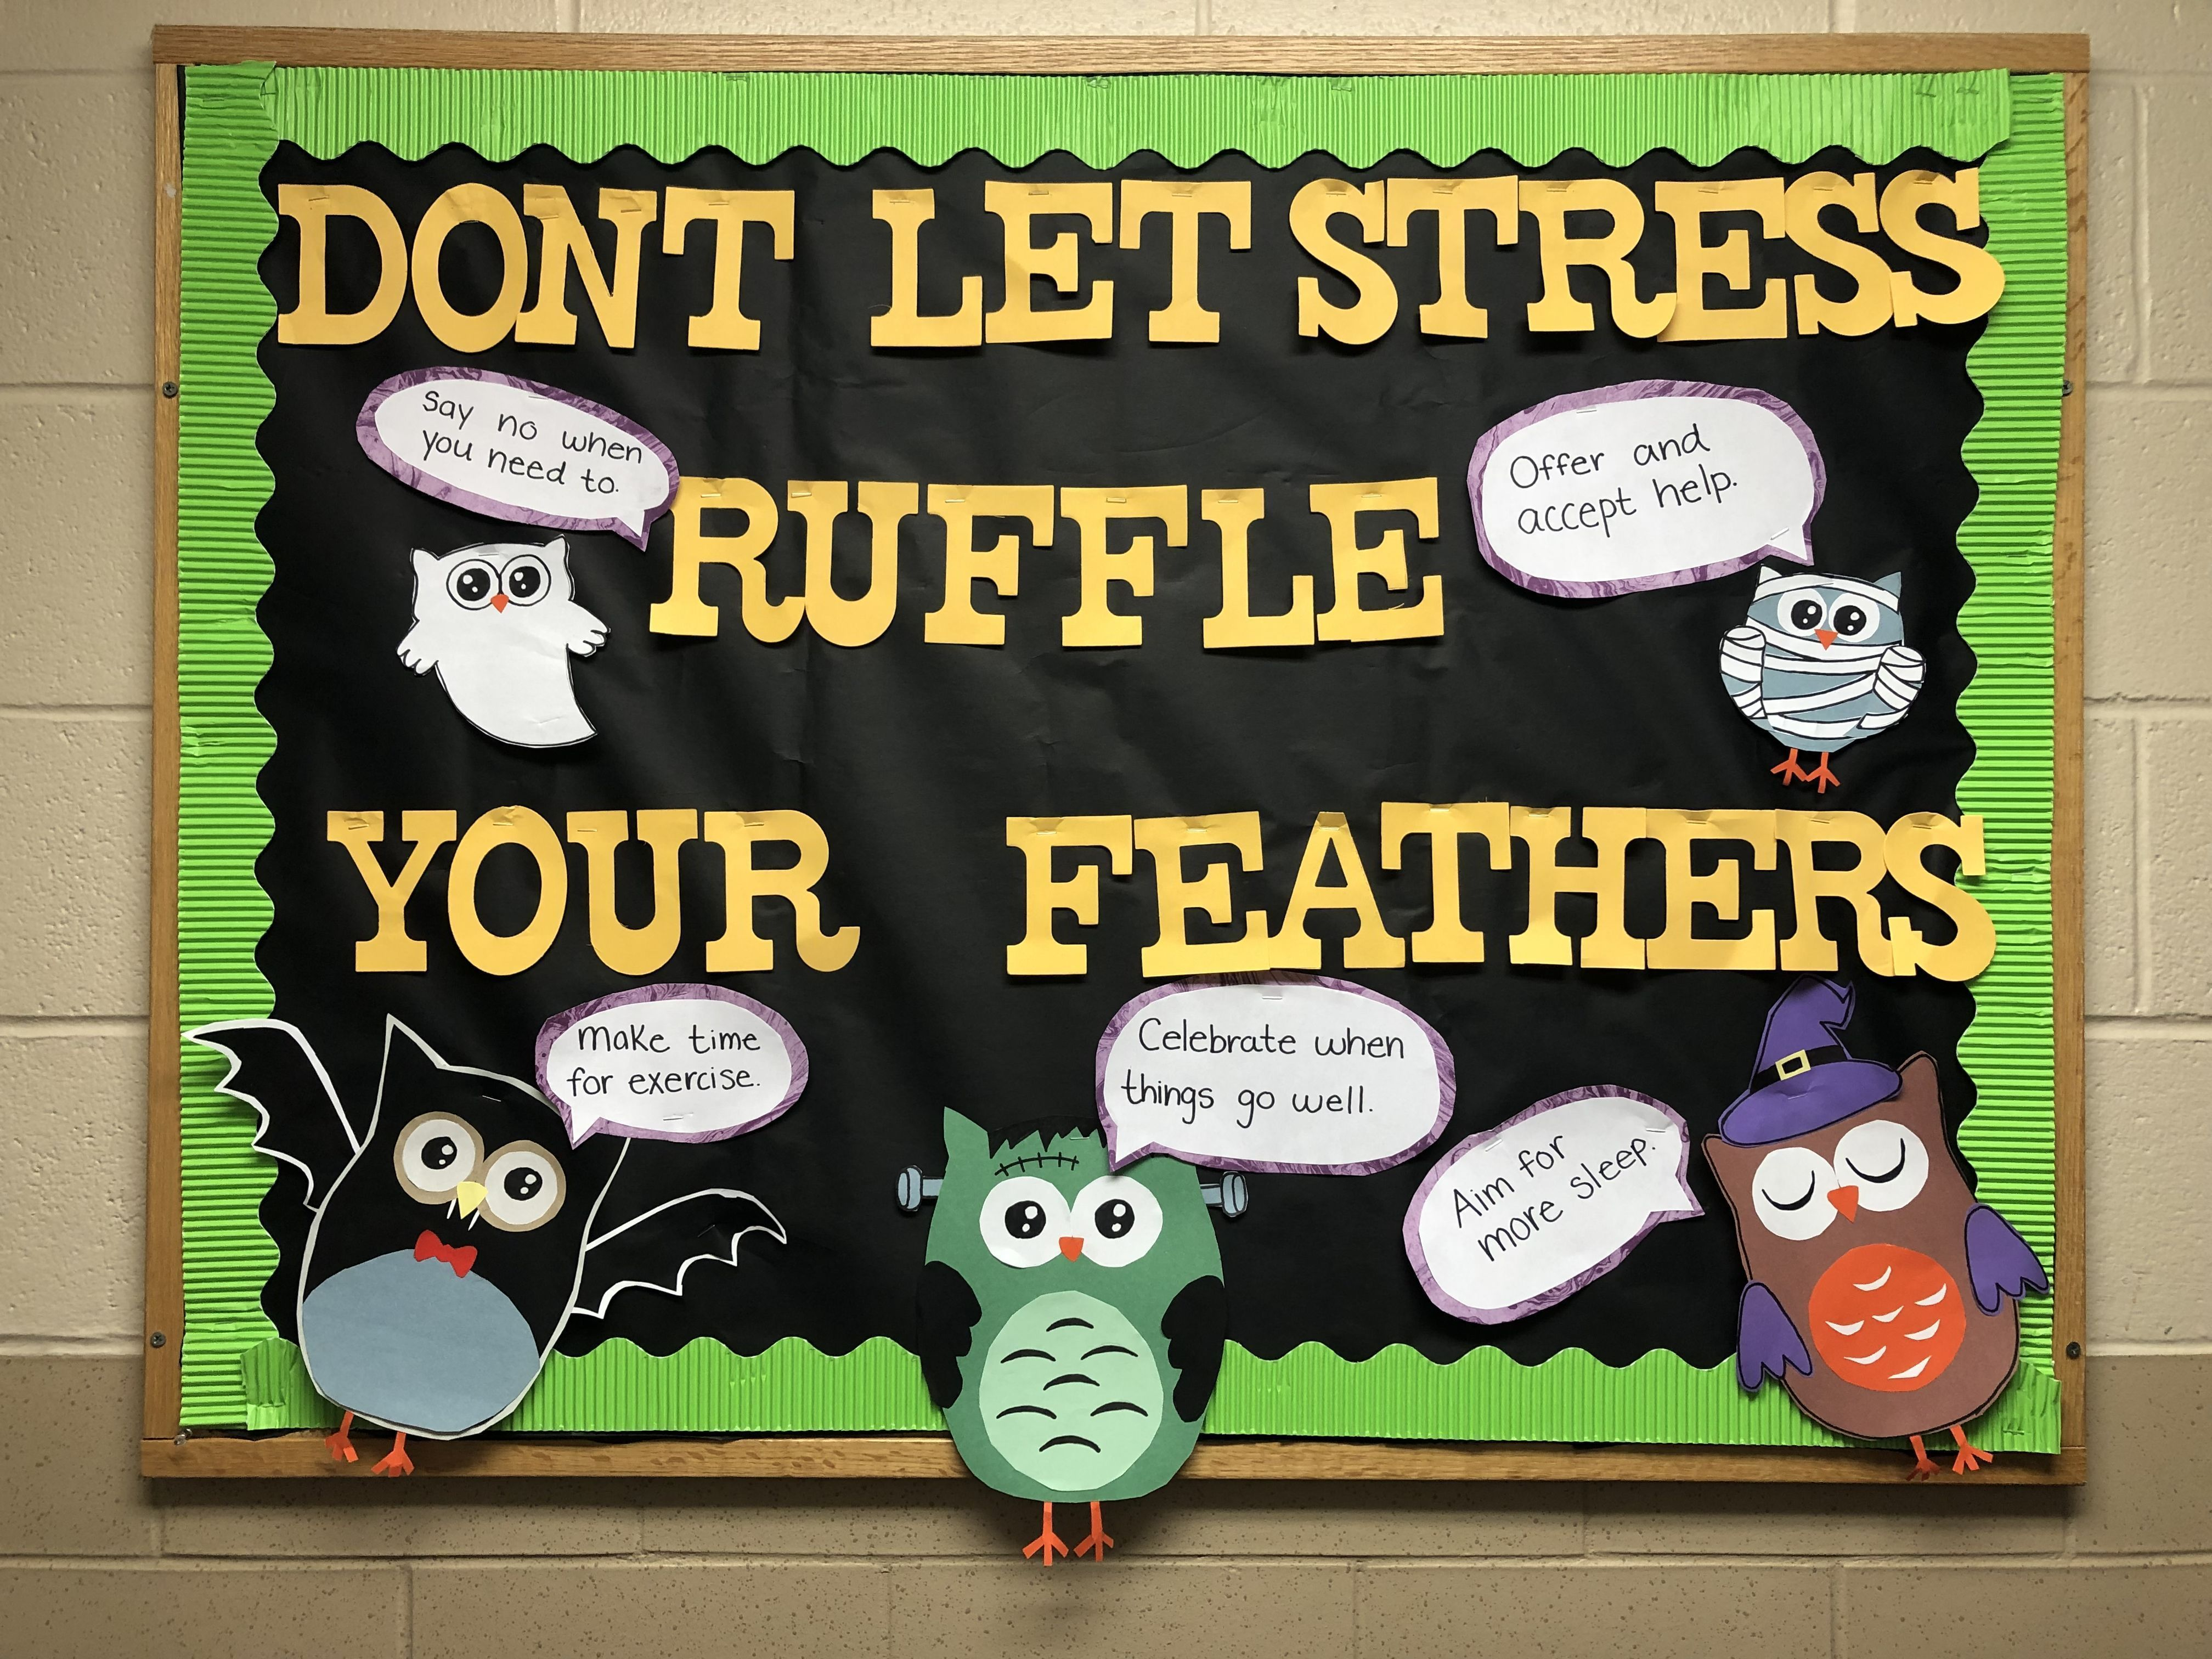 Don't let stress ruffle your feathers. Halloween Bulletin board  #halloweenbulletinboards Resident assistant bulletin board. Halloween bulletin board. Don't let stress ruffle your feathers. #halloweenbulletinboards Don't let stress ruffle your feathers. Halloween Bulletin board  #halloweenbulletinboards Resident assistant bulletin board. Halloween bulletin board. Don't let stress ruffle your feathers. #halloweenbulletinboards Don't let stress ruffle your feathers. Halloween Bulletin bo #rabulletinboards